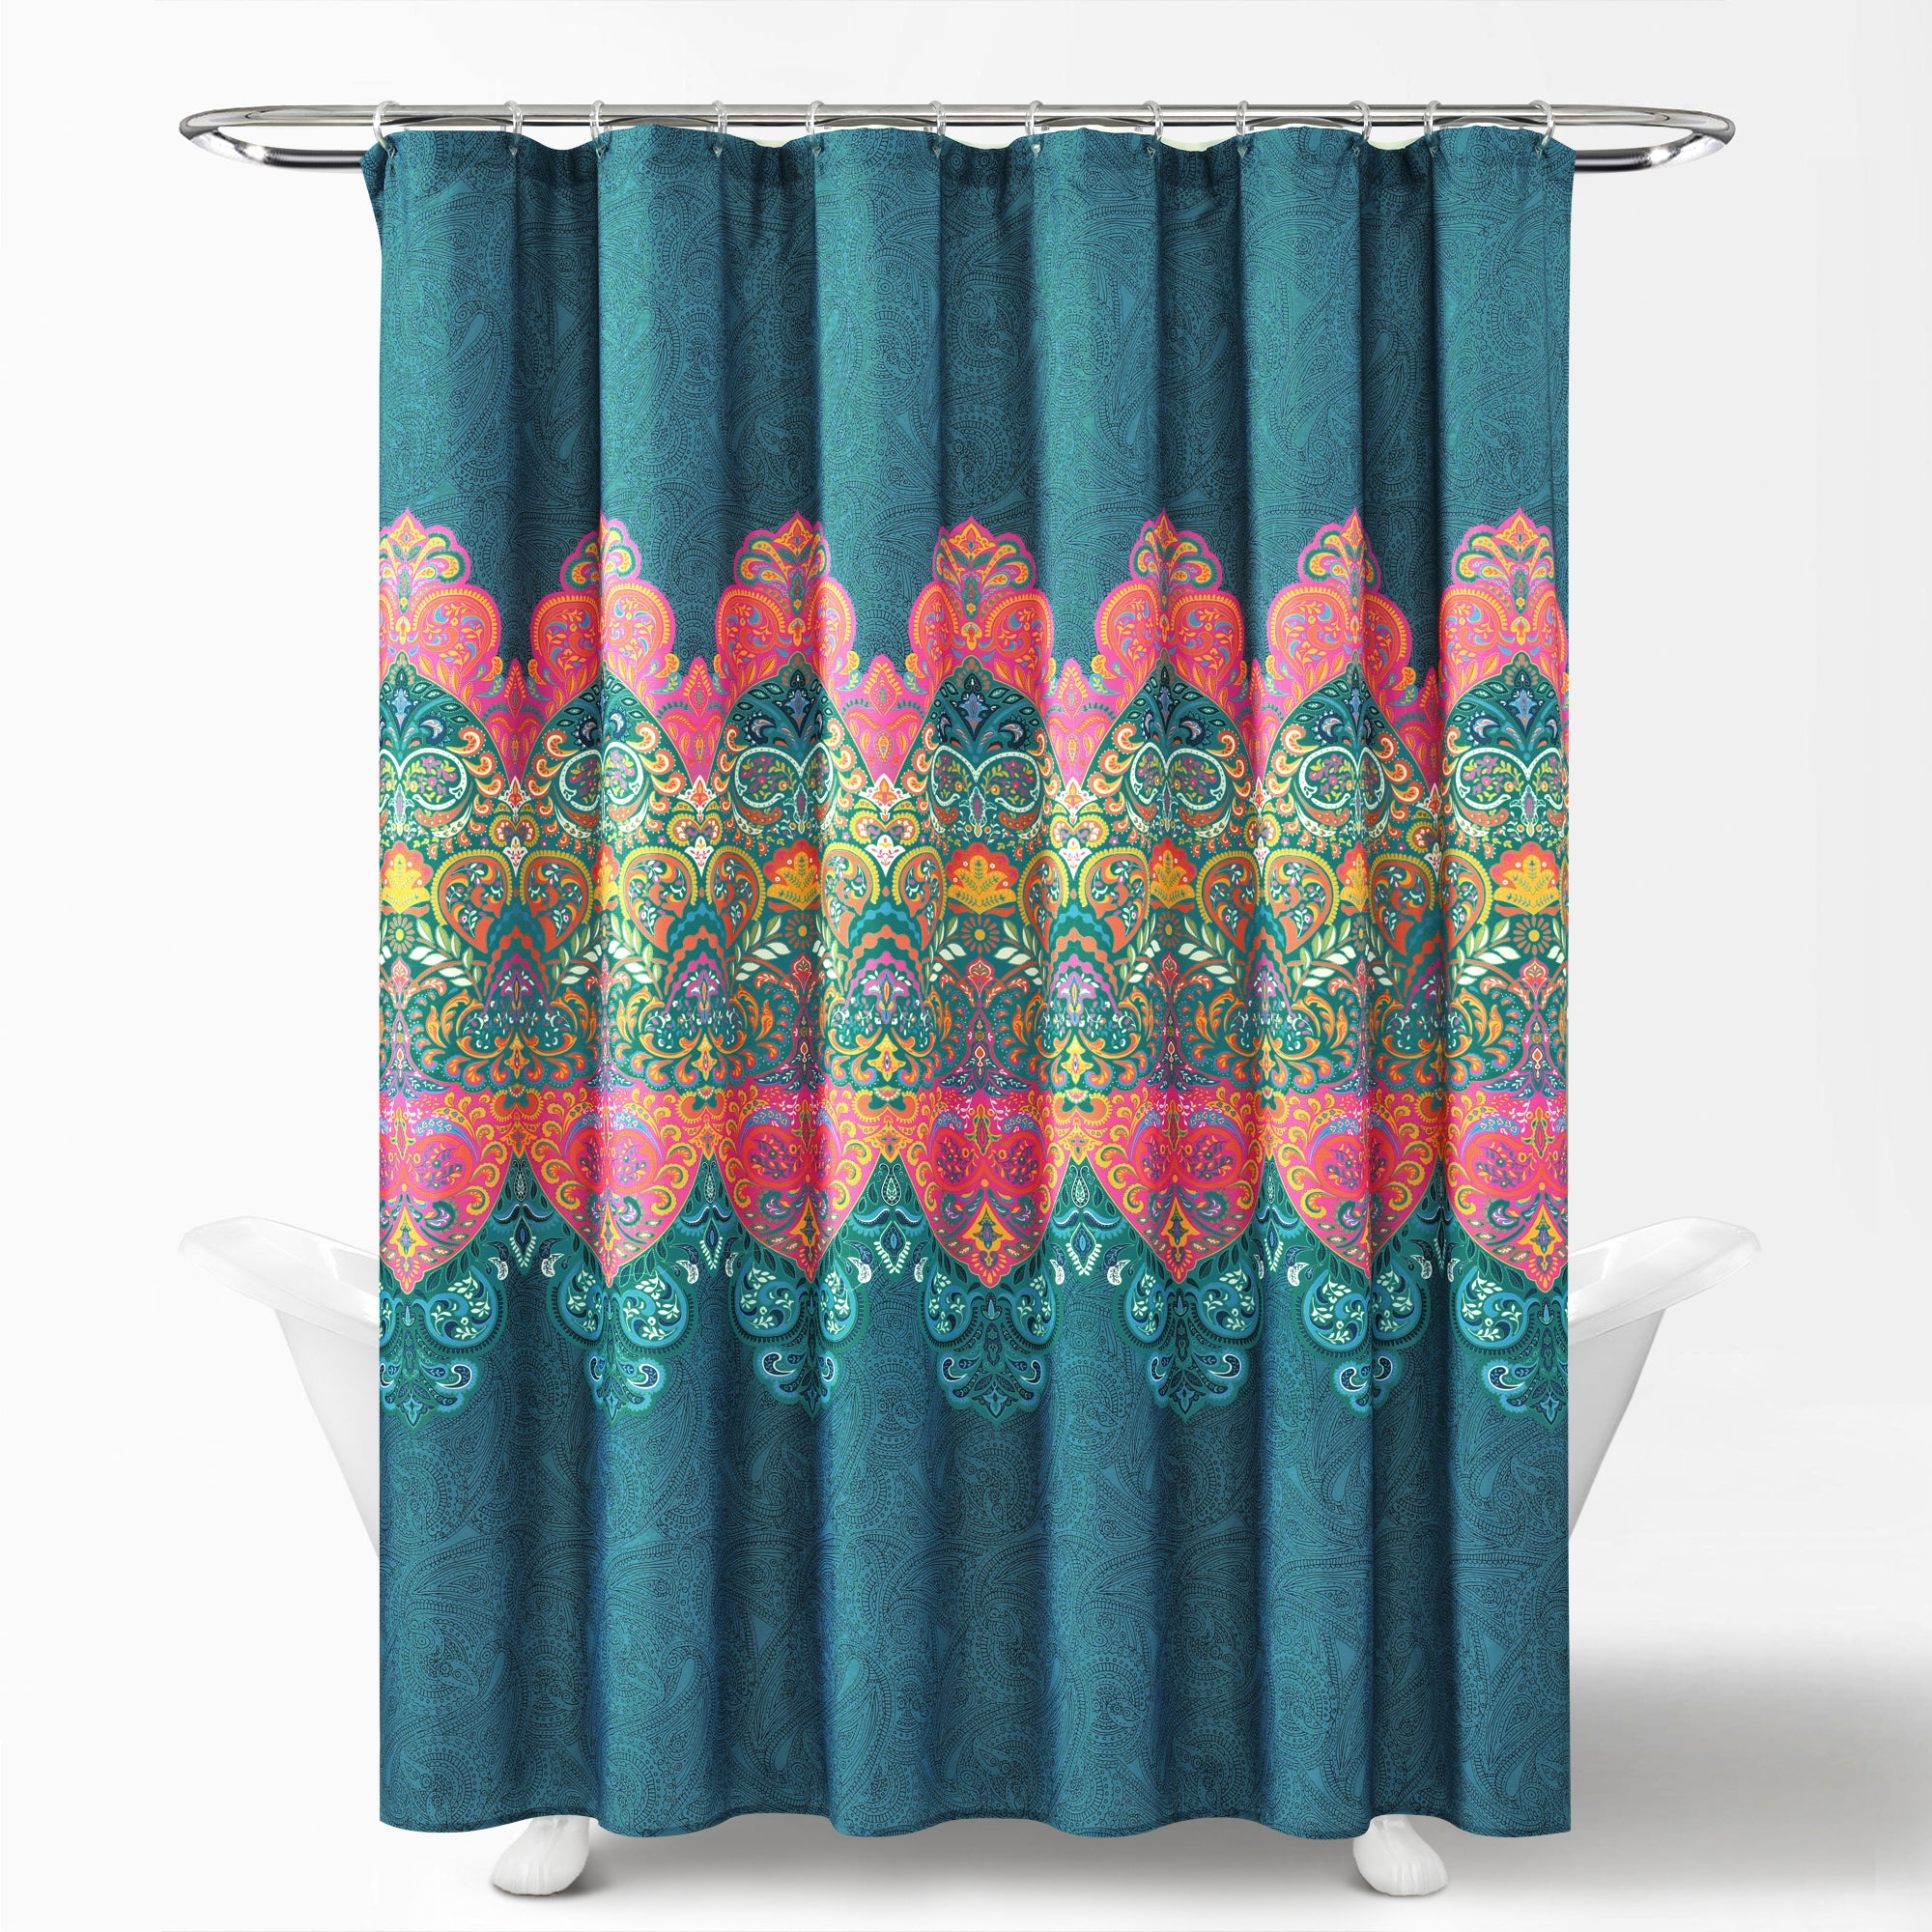 71 Boho Floral Shower Curtain Bohemian Blossom Flower Bathroom Accessory Sets